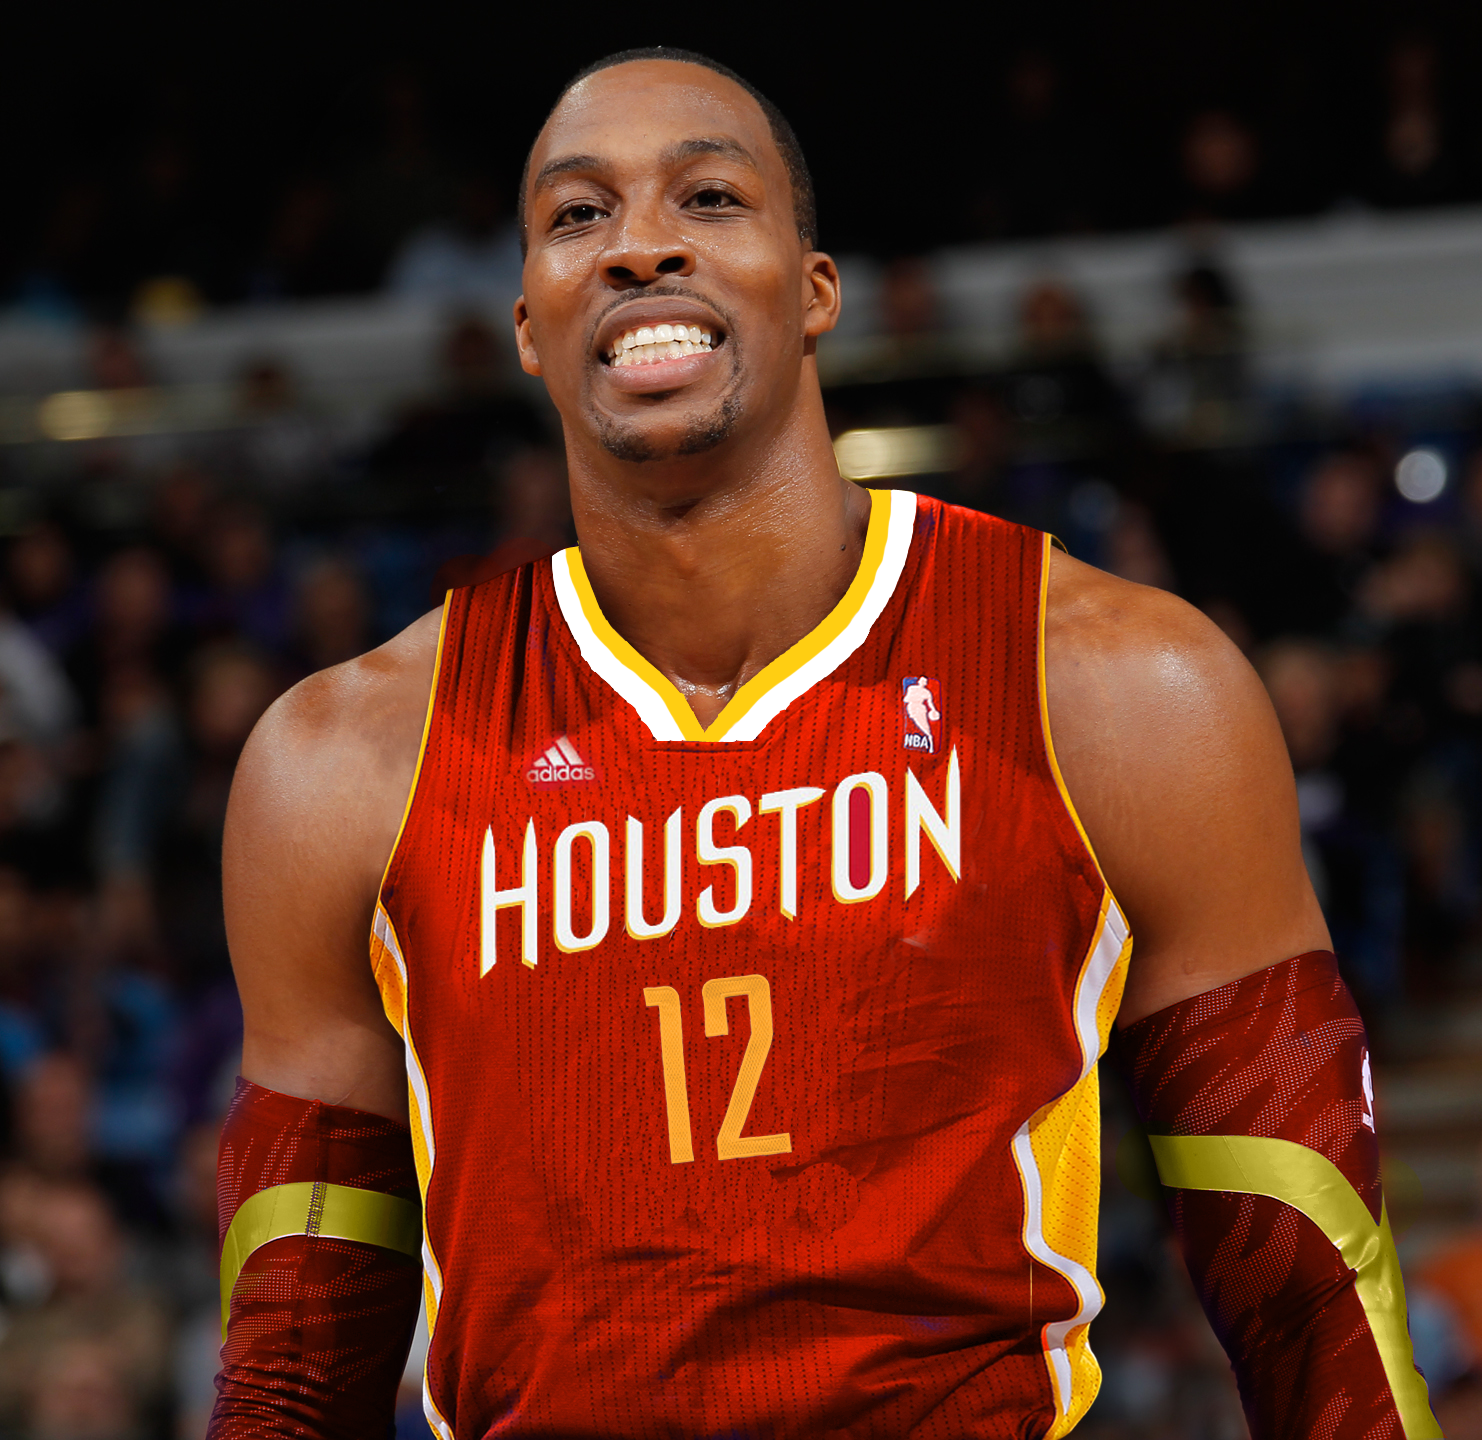 Dwight Howard Rockets1 Dwight Howard Decides To Sign To Houston Rockets Contract Still Being Basketball Players Dwight Howard Basketball Players Nba